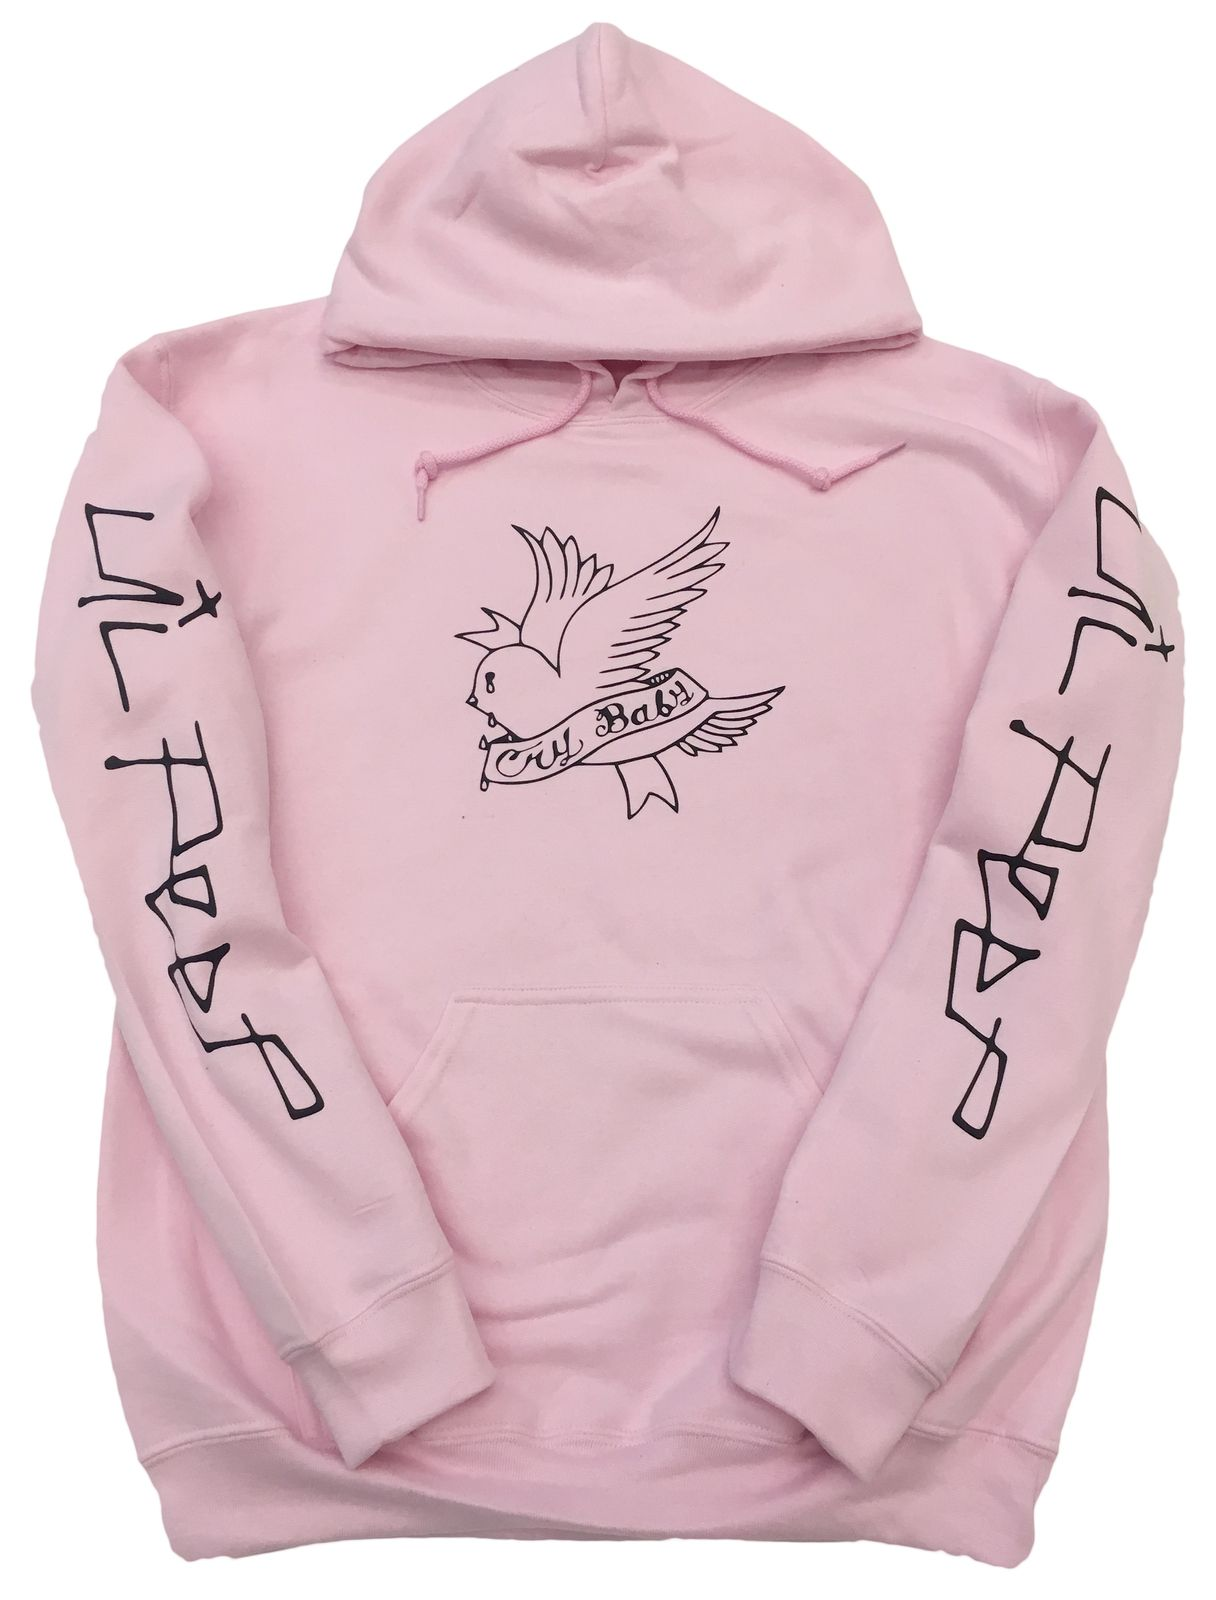 da53ef723 Lil Peep Hoodie Cry Baby Twitter Bird Design in Black Print ...